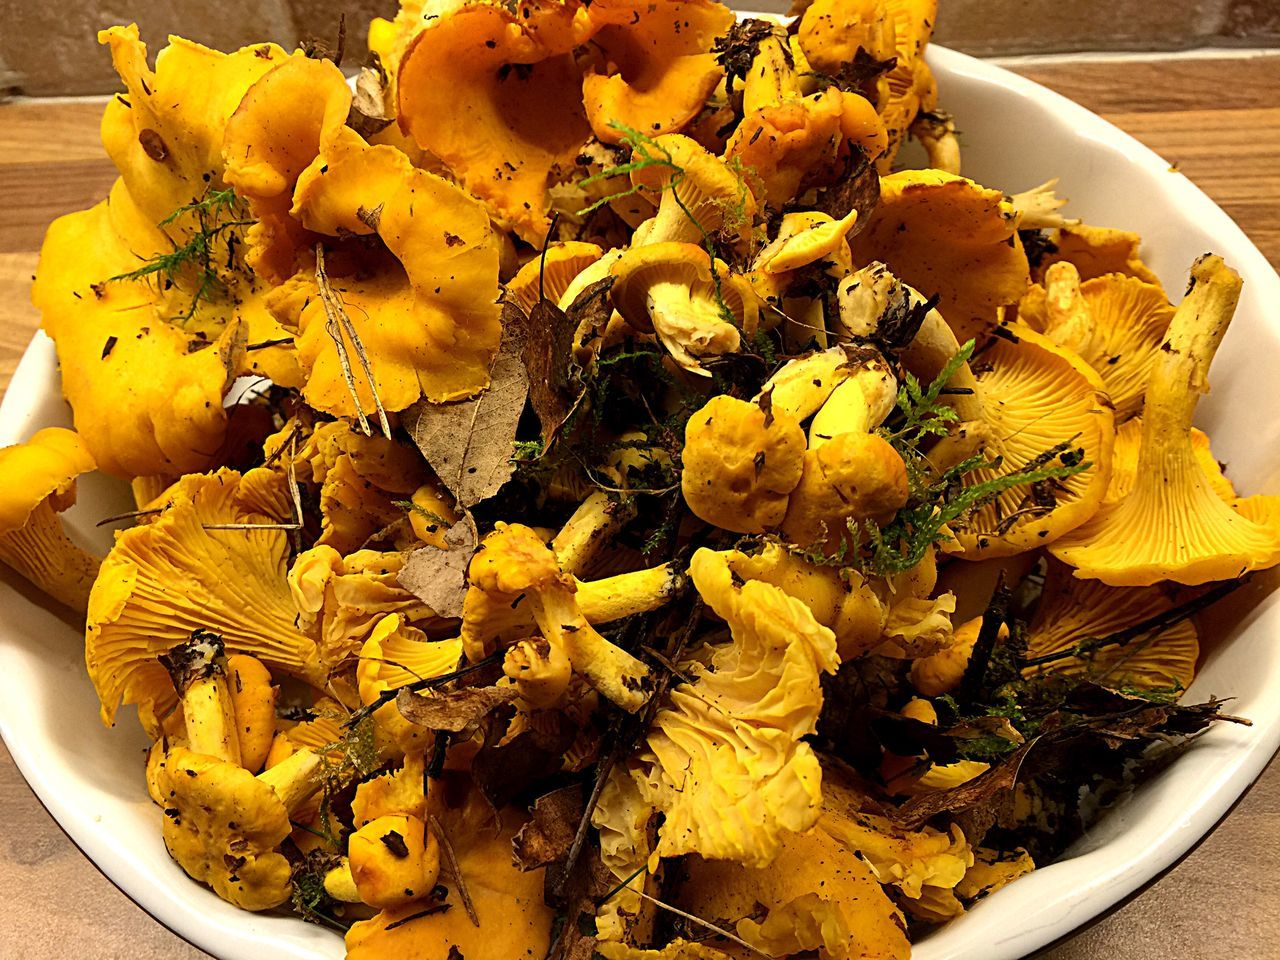 Chanterelles Chanterelle Forestwalk Muchrooms Delicious Yellow Taking Photos Sweden Showcase August Lovely Day IPhoneography Iphonephotography Outside Outside Photography